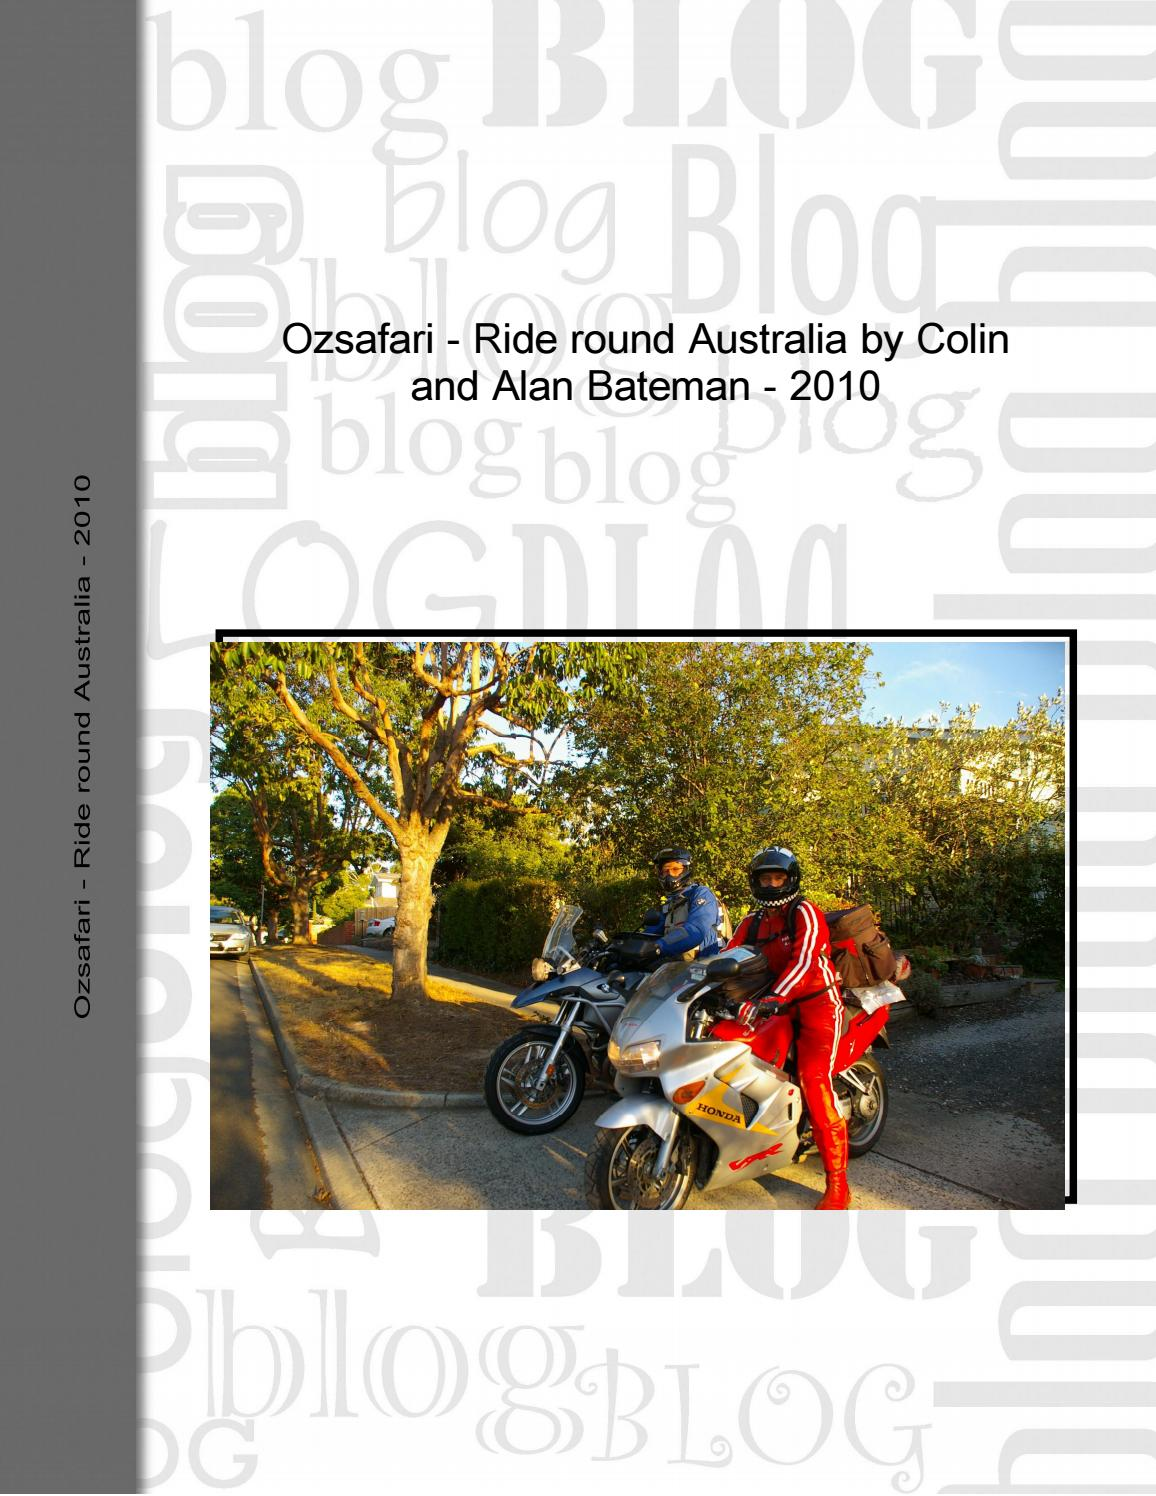 Ride round australia by Colin and Alan Bateman 2010 by Alan